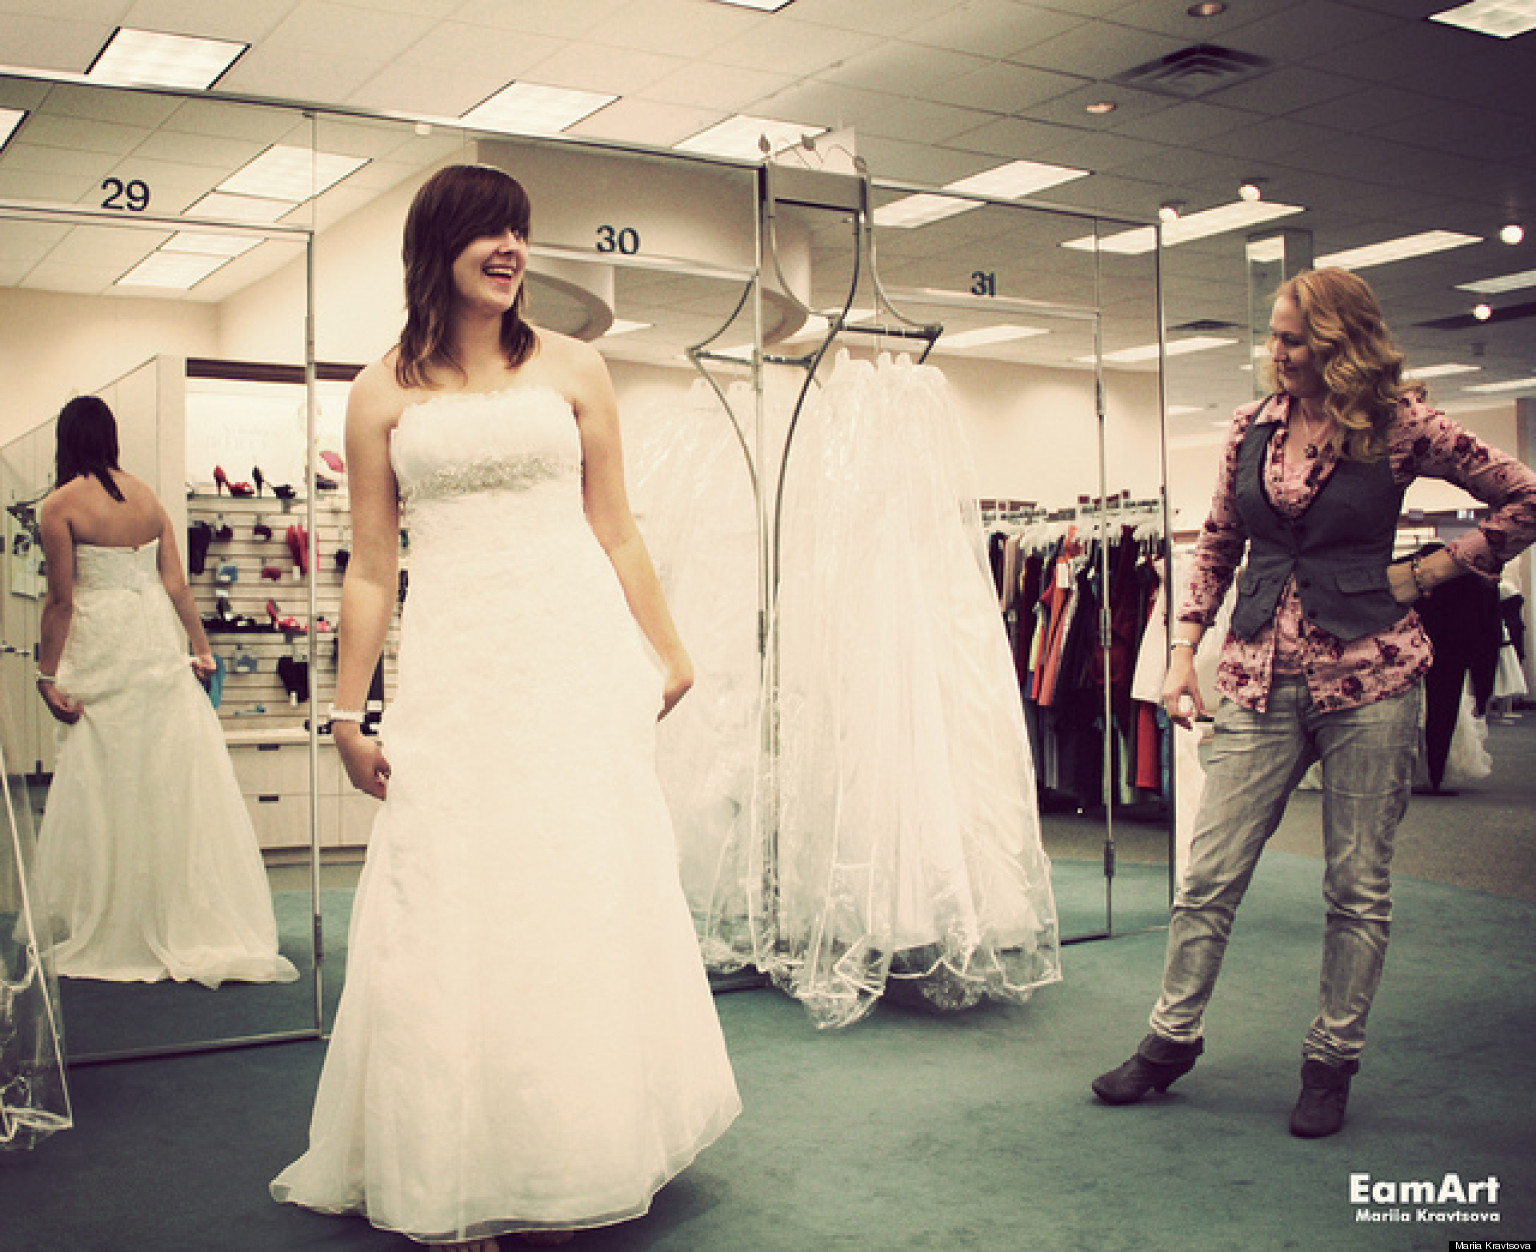 12 Wedding Dress Shopping Tips To Make Saying Yes Less Stressful - Wedding Dress Stores Indianapolis